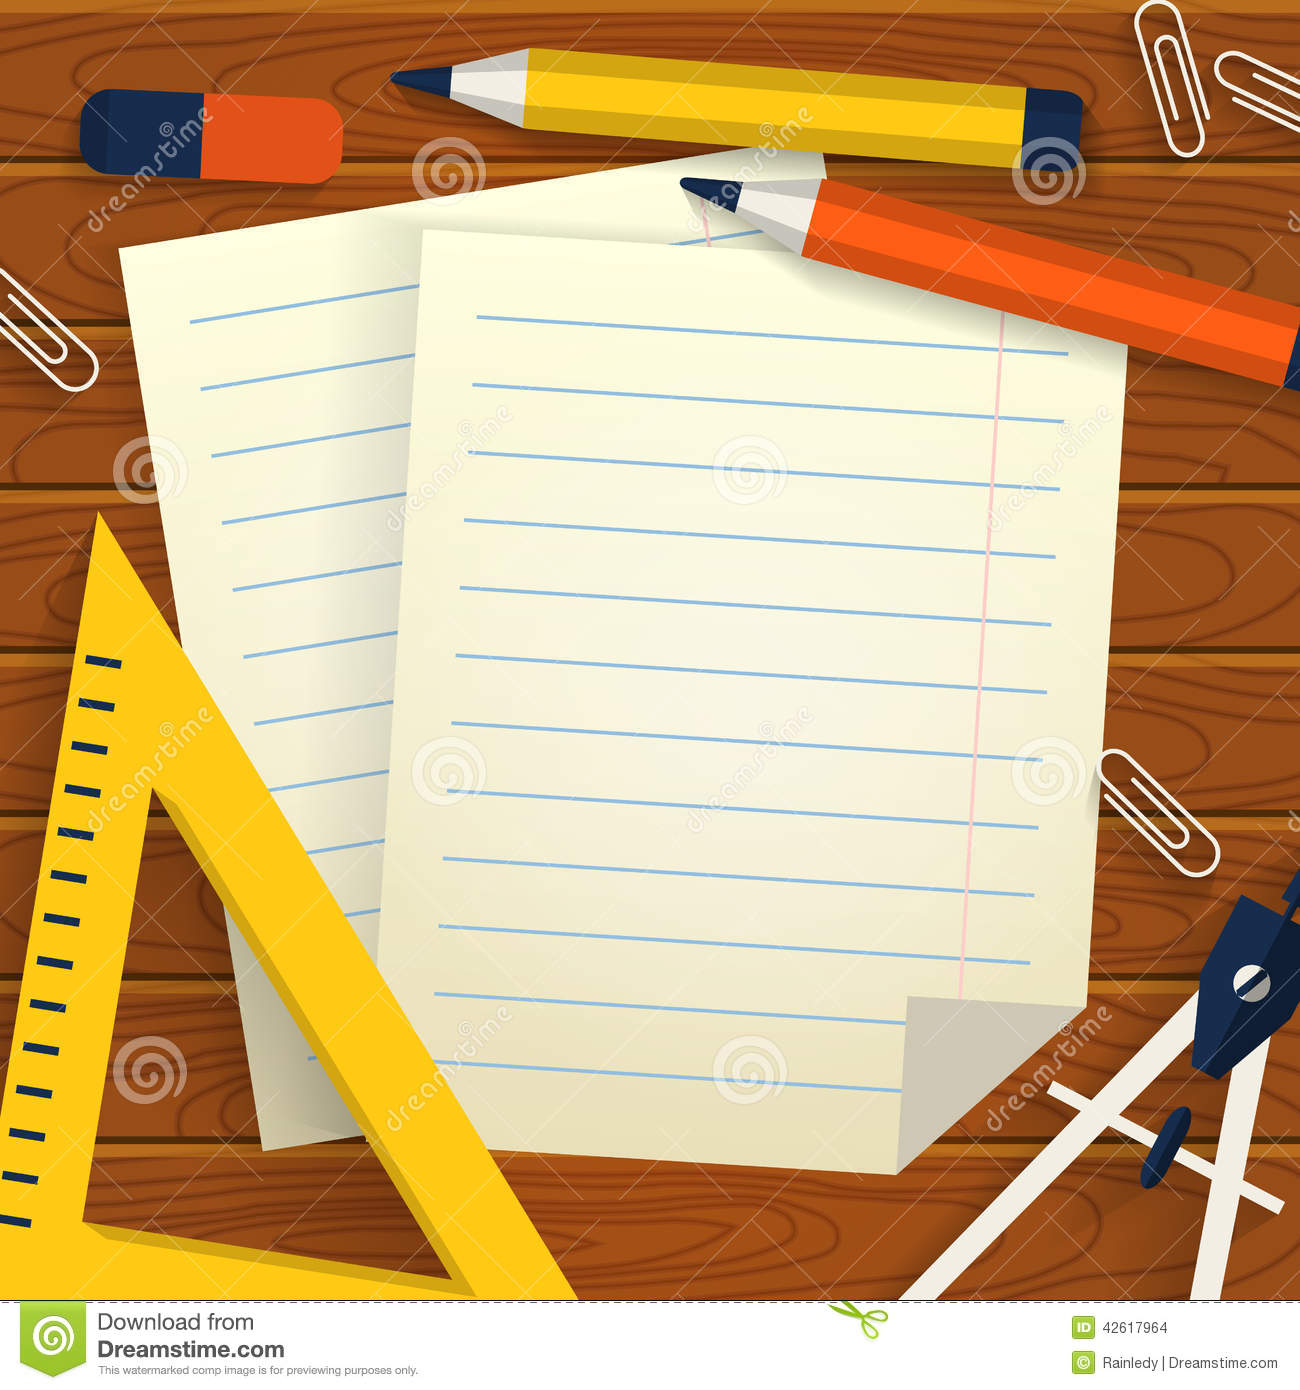 Lined school paper stock images, royalty free images